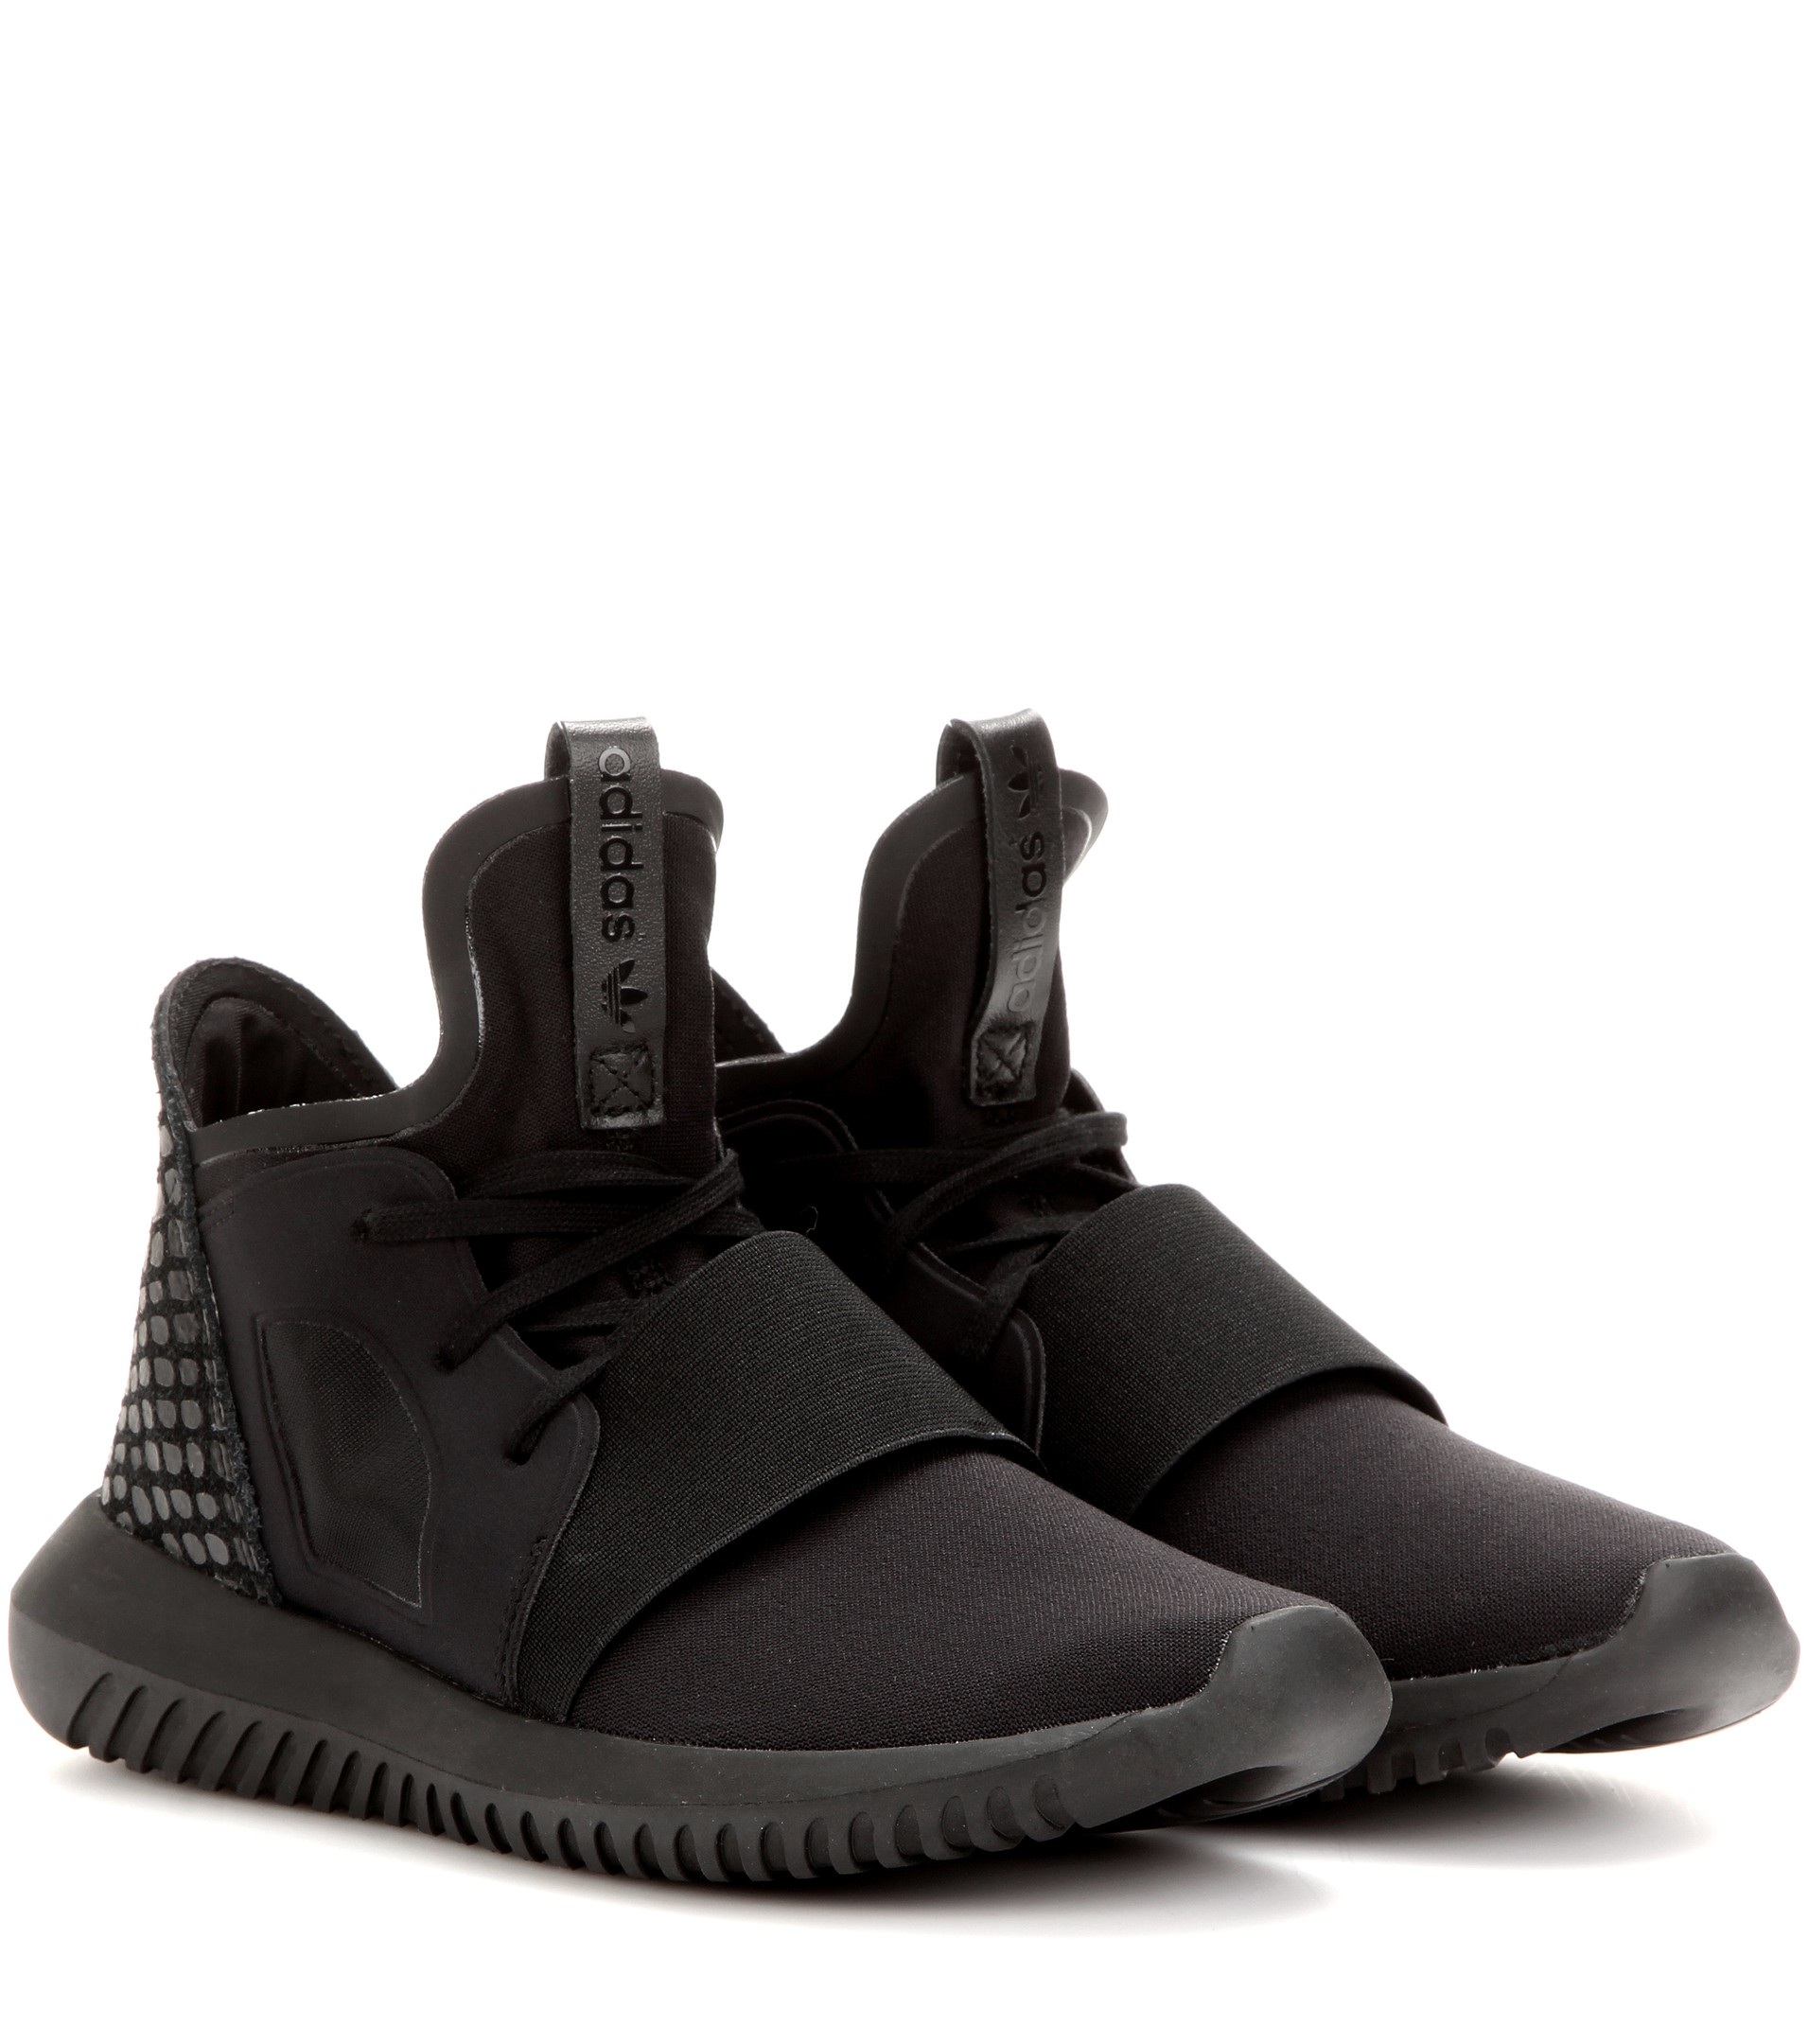 Adidas Tubular Radial High Top